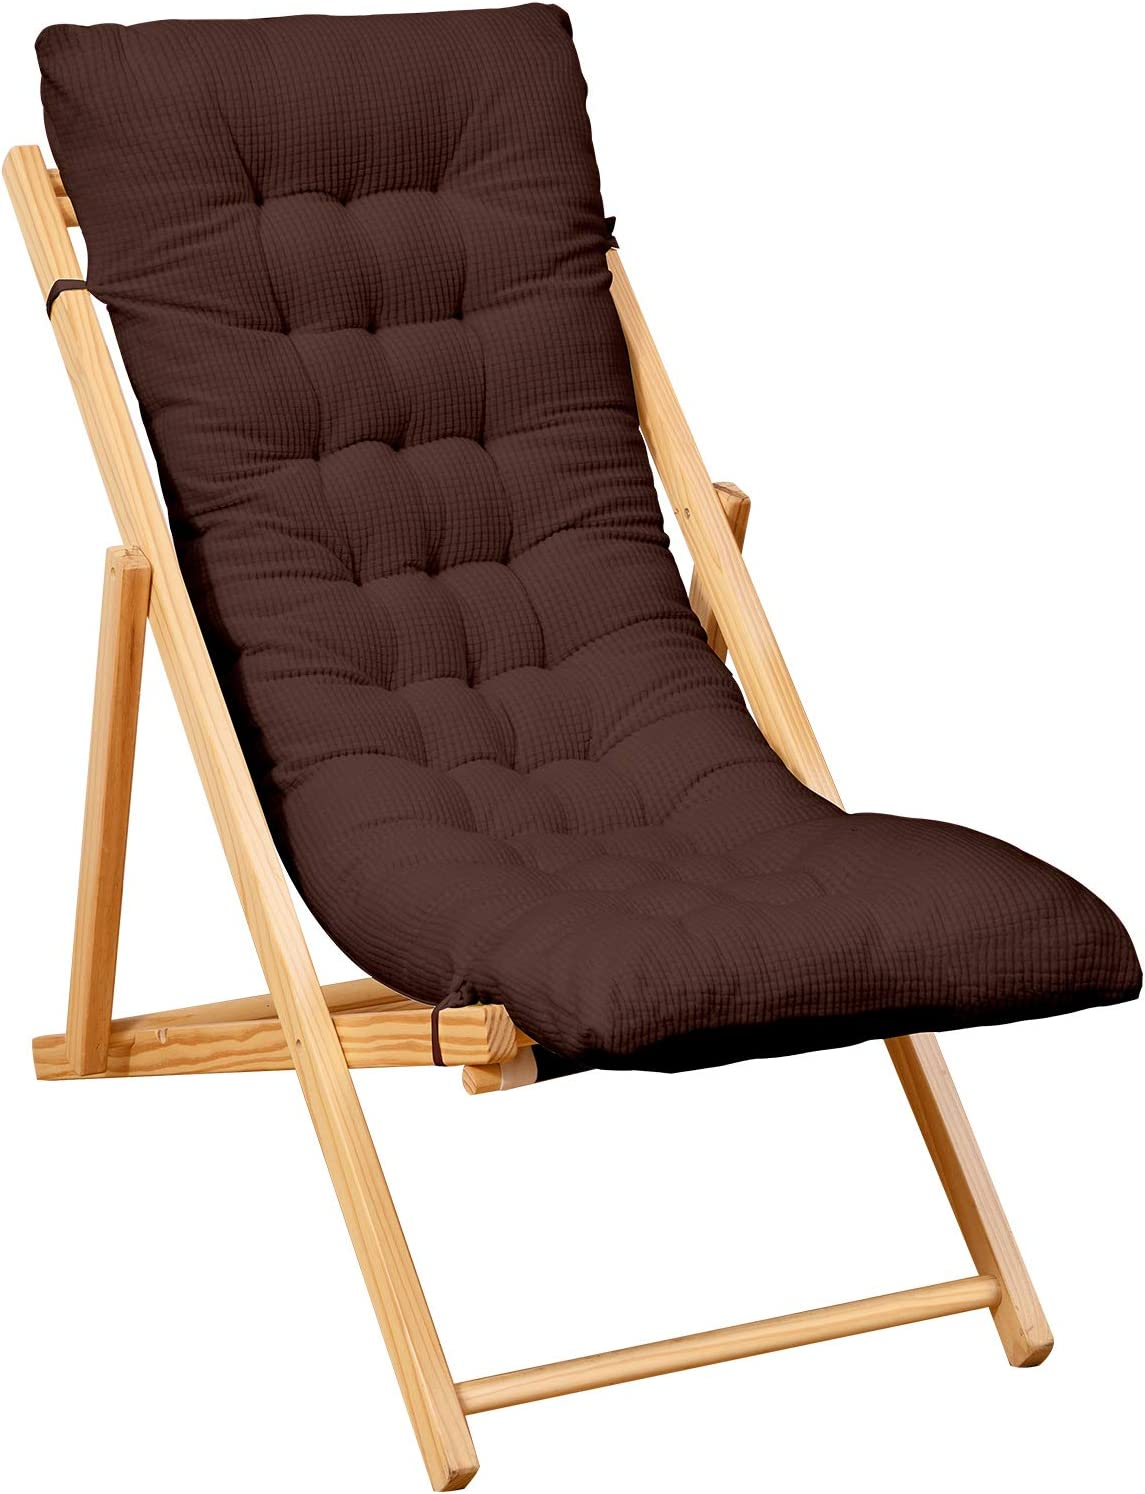 Yimeis Rocking Chair Cushions Pads, Indoor Zero Gravity Swing Long Bench Chaise Recliner Cushions for Lounge Chairs, Outdoor Patio Lawn Lounge Bench Chair Cushions for Outdoor Furniture (Coffee)